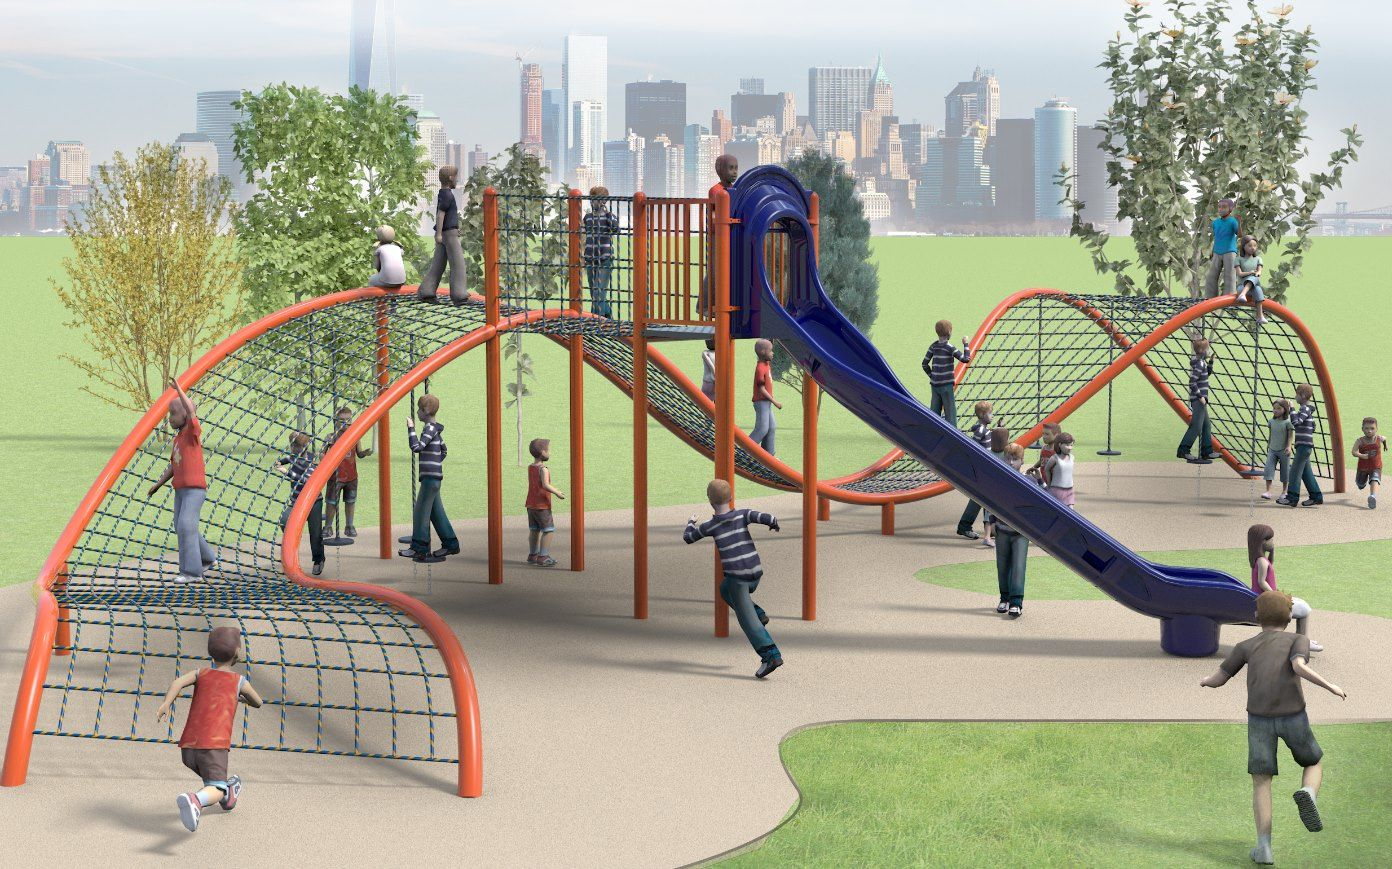 Fun Design Created By Dynamo Playgrounds Combining A Custom Ropes Course And Slide Playground School Playground Kids Playground